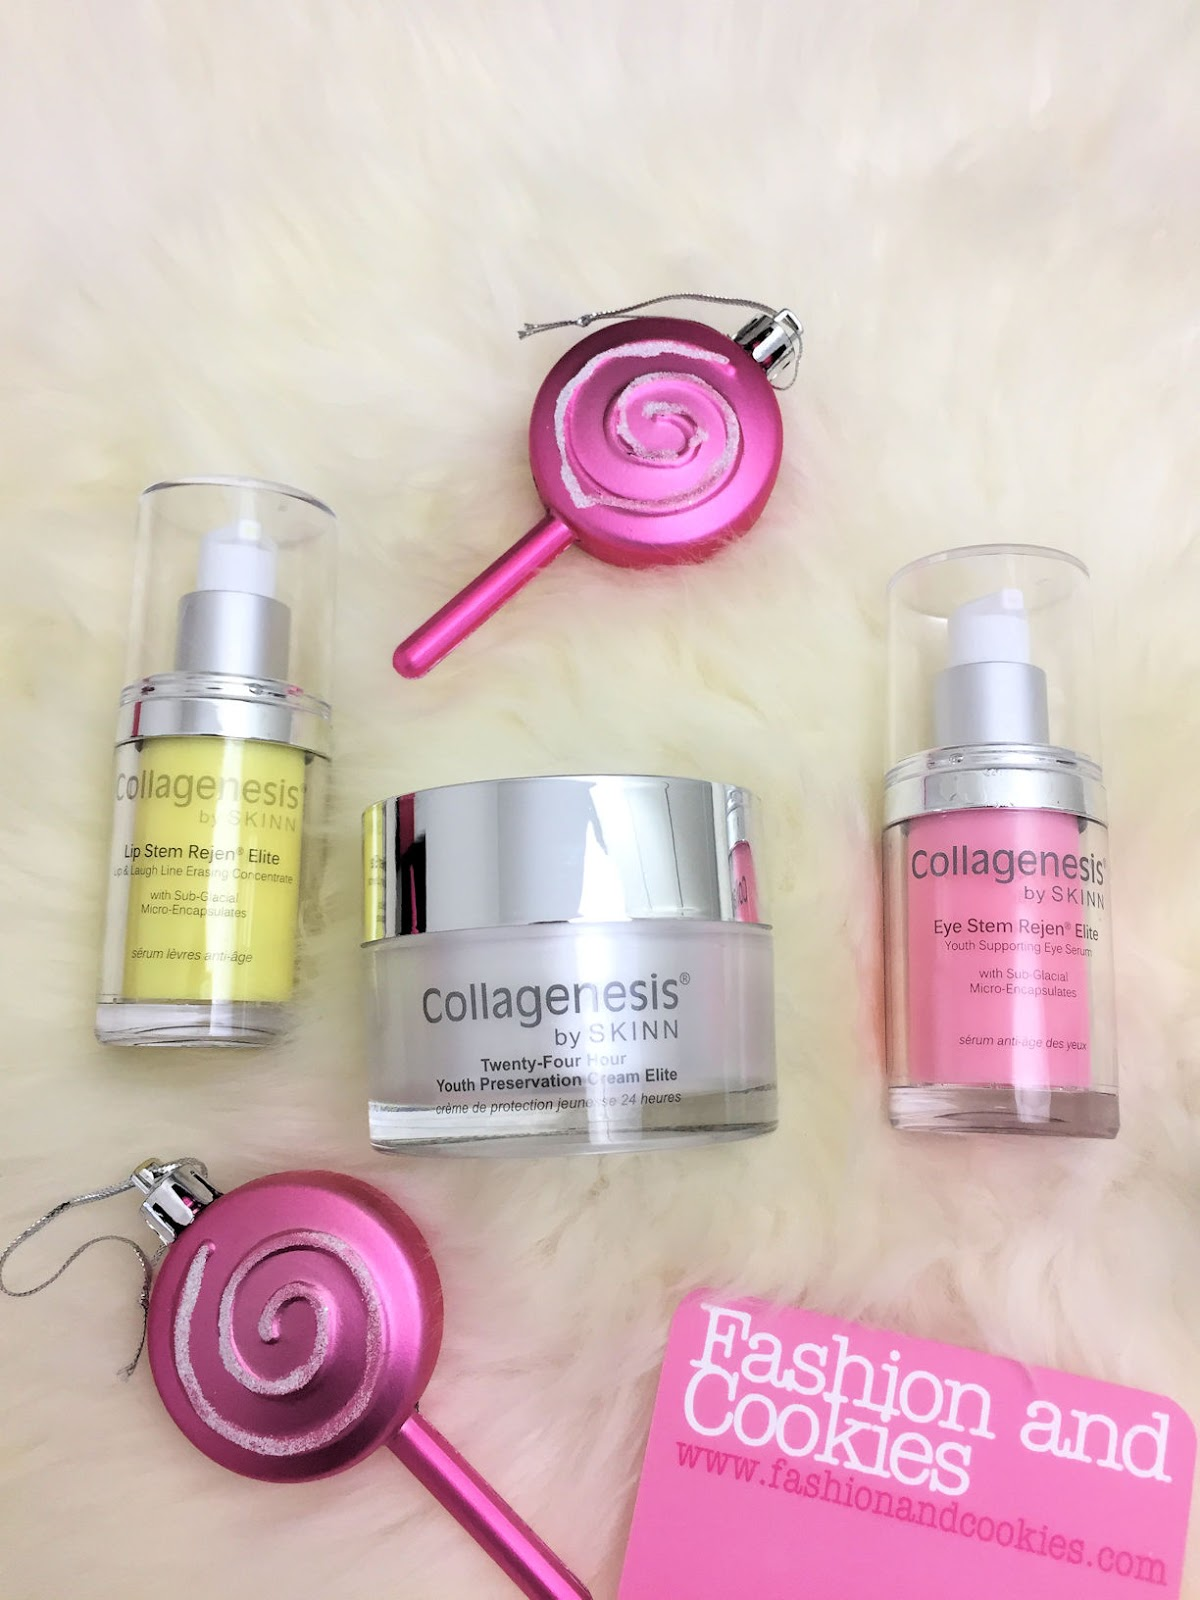 Collagenesis by Skinn Cosmetics review on Fashion and Cookies beauty blog, beauty blogger